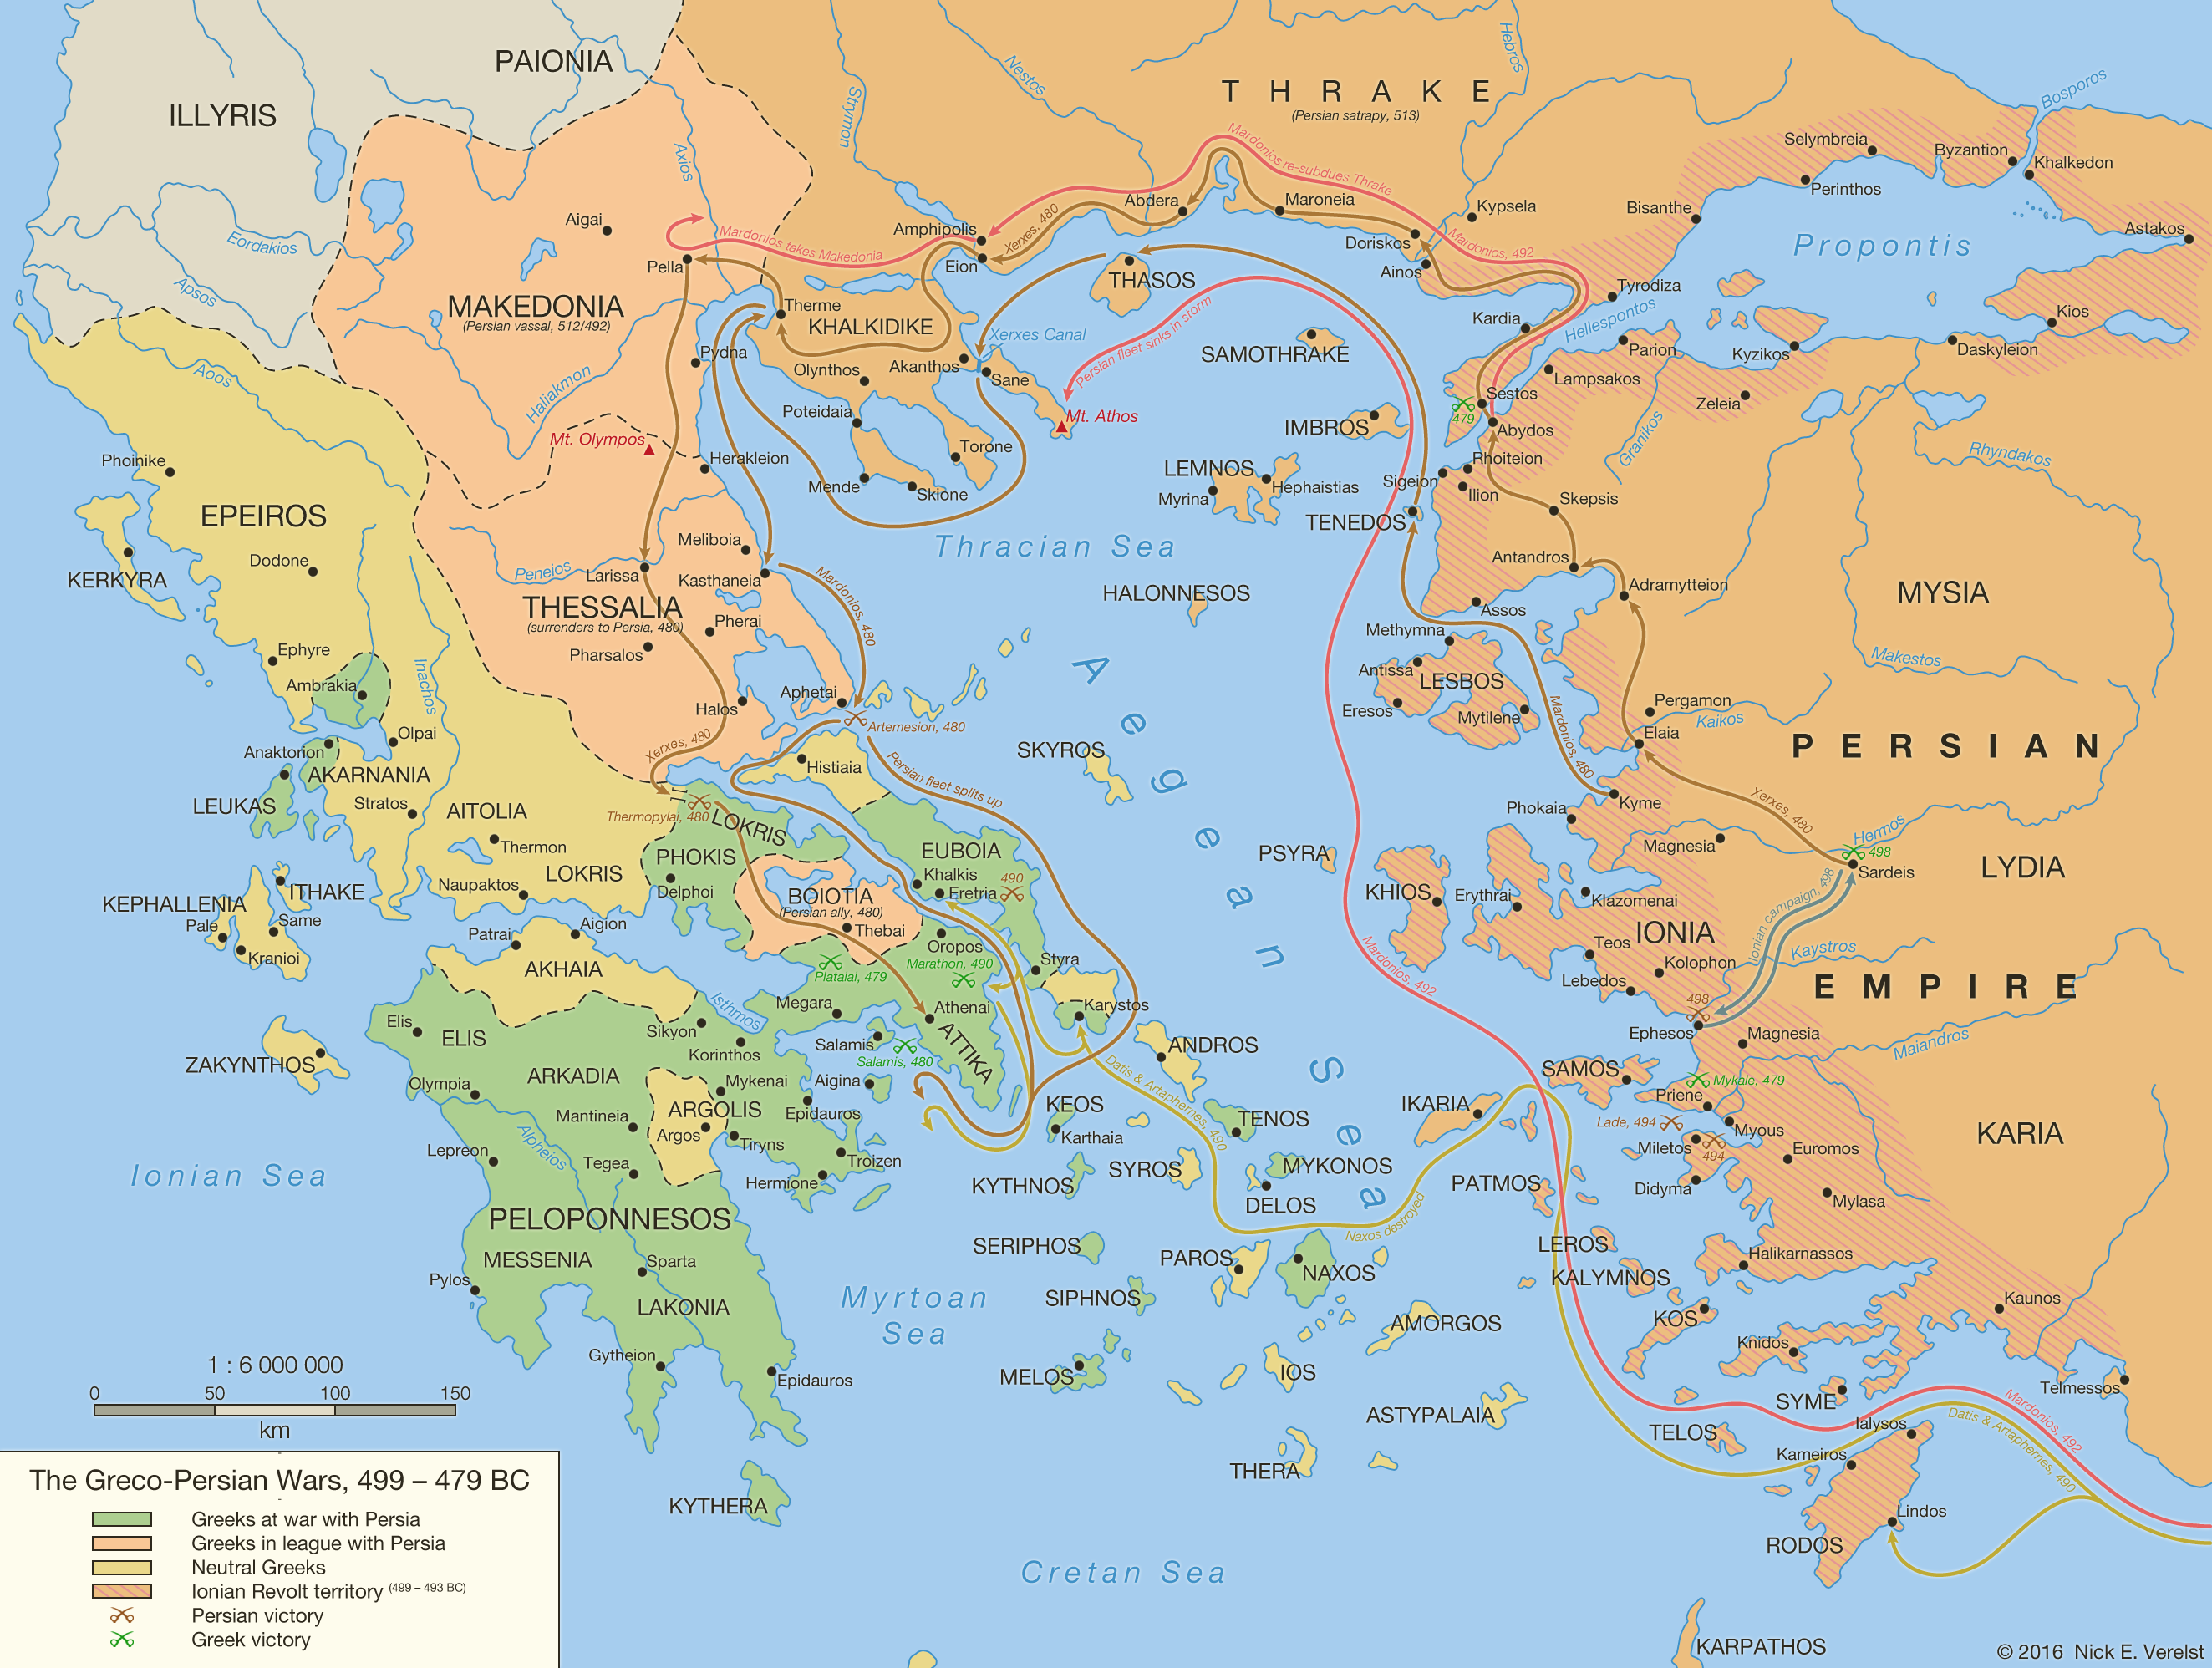 the persian war between greece and persia The persian wars were a series of wars fought between the persians and the greeks from 492 bc to 449 bc the persian empire was the largest and most powerful empire in the world at the time of the persian wars.